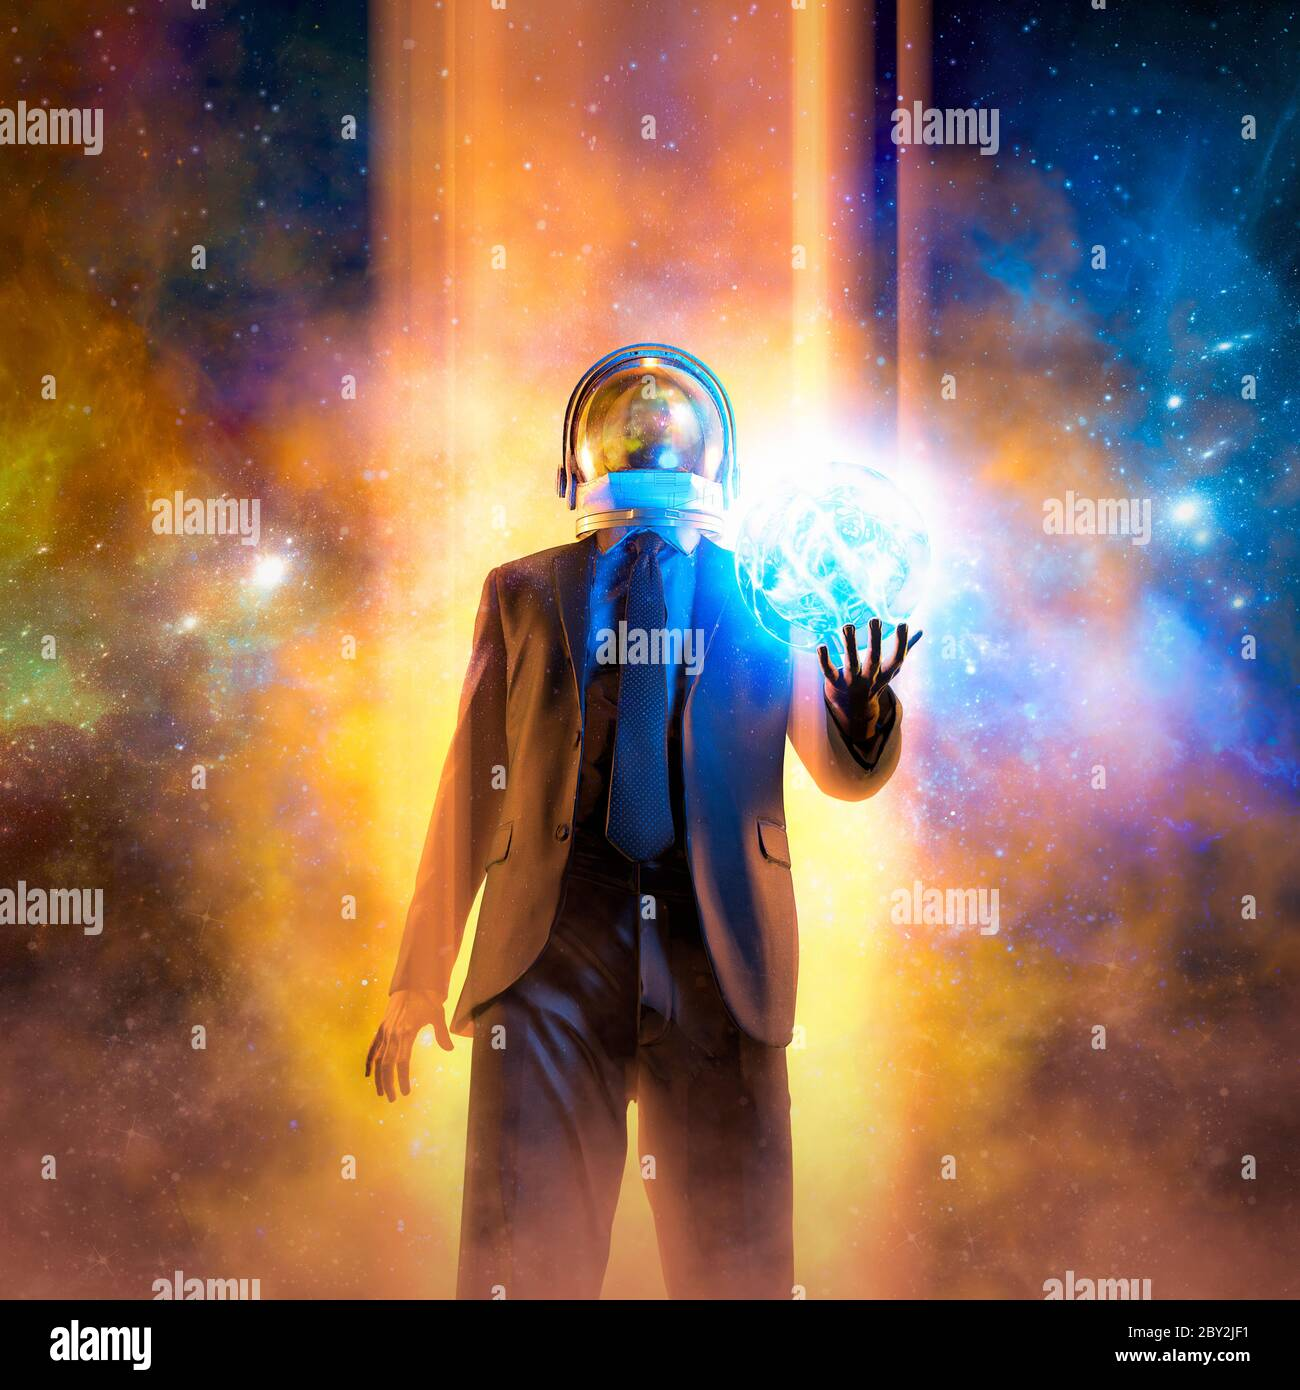 Night of the magician / 3D illustration of suited male figure with astronaut helmet conjuring glowing ball of energy in outer space Stock Photo